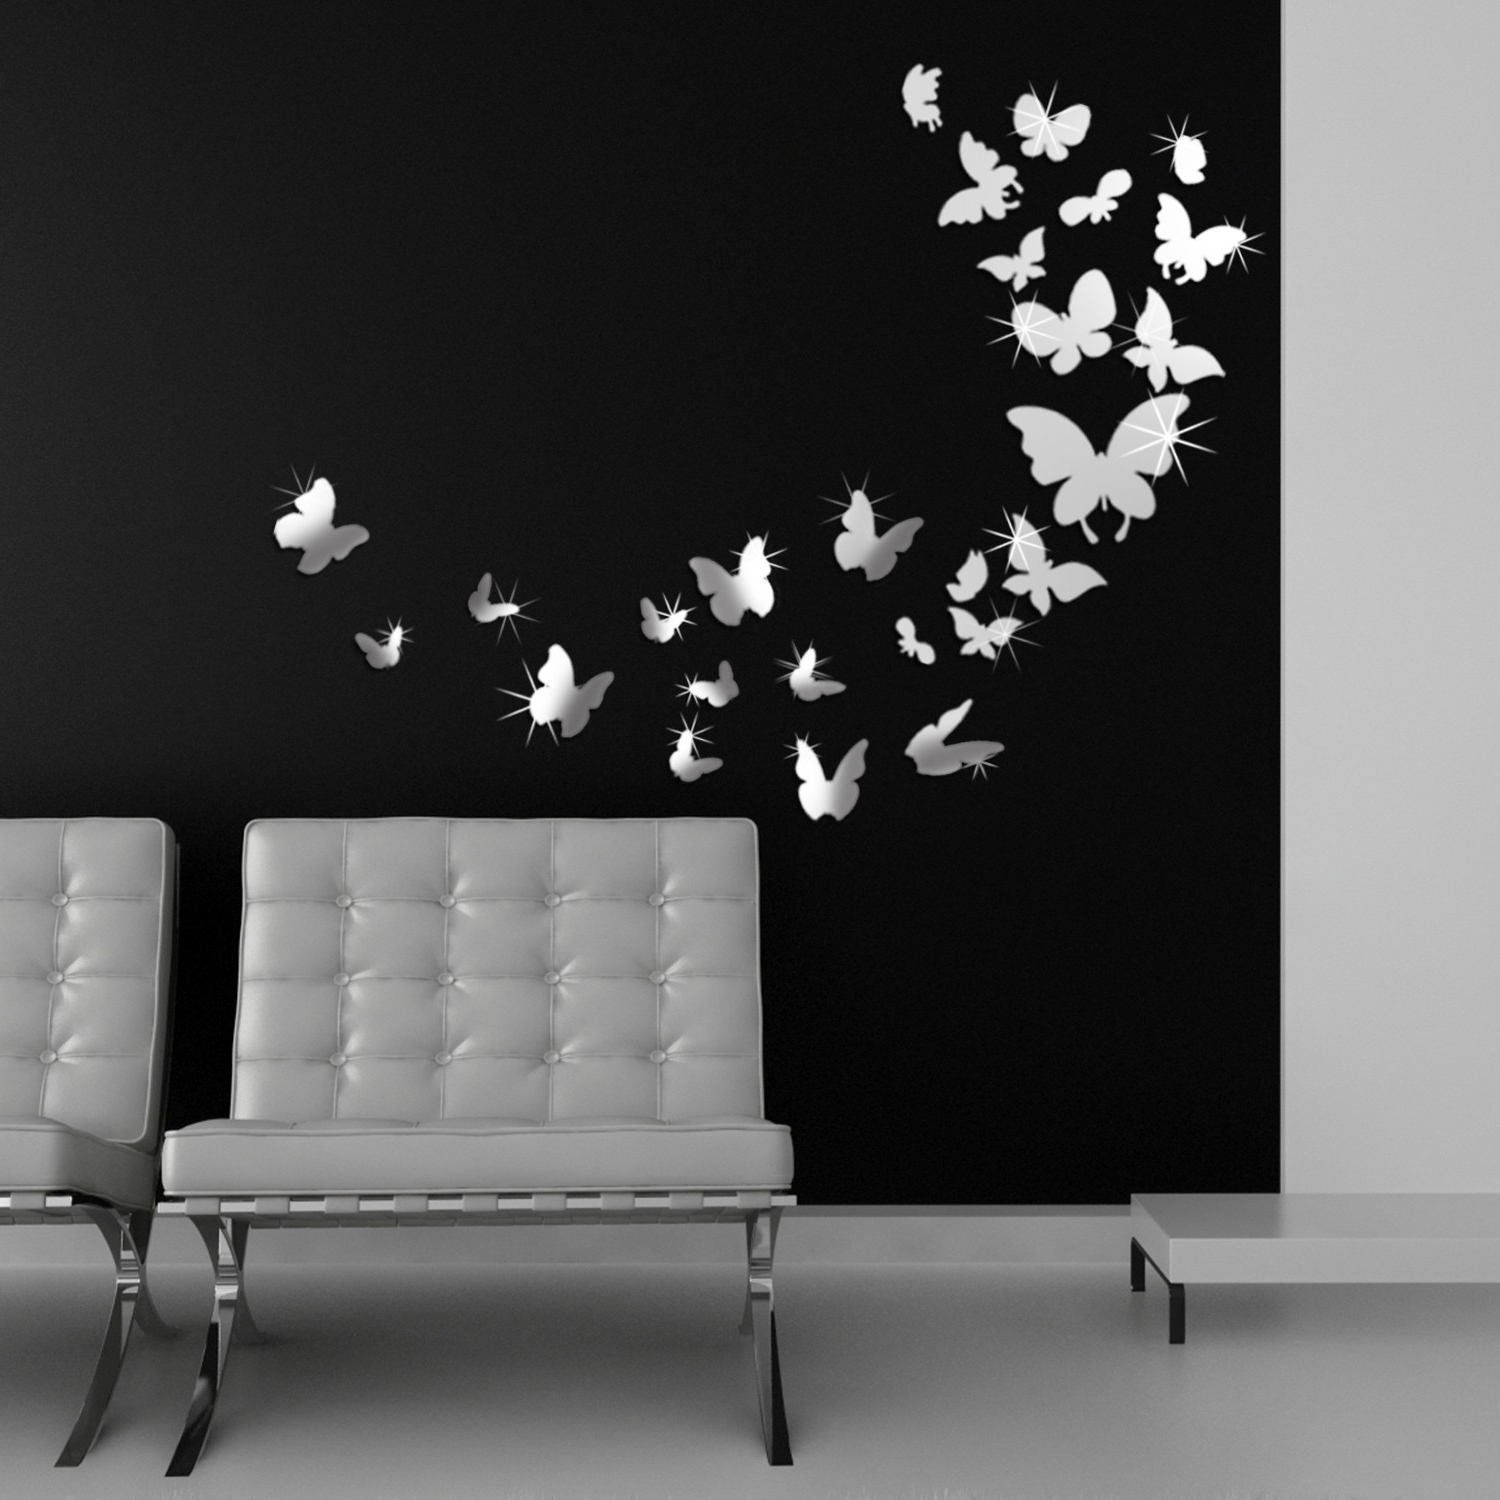 Black Wall Art Popular Black Wall Art – Wall Decoration Ideas With Regard To Best And Newest Black Wall Art (Gallery 2 of 20)